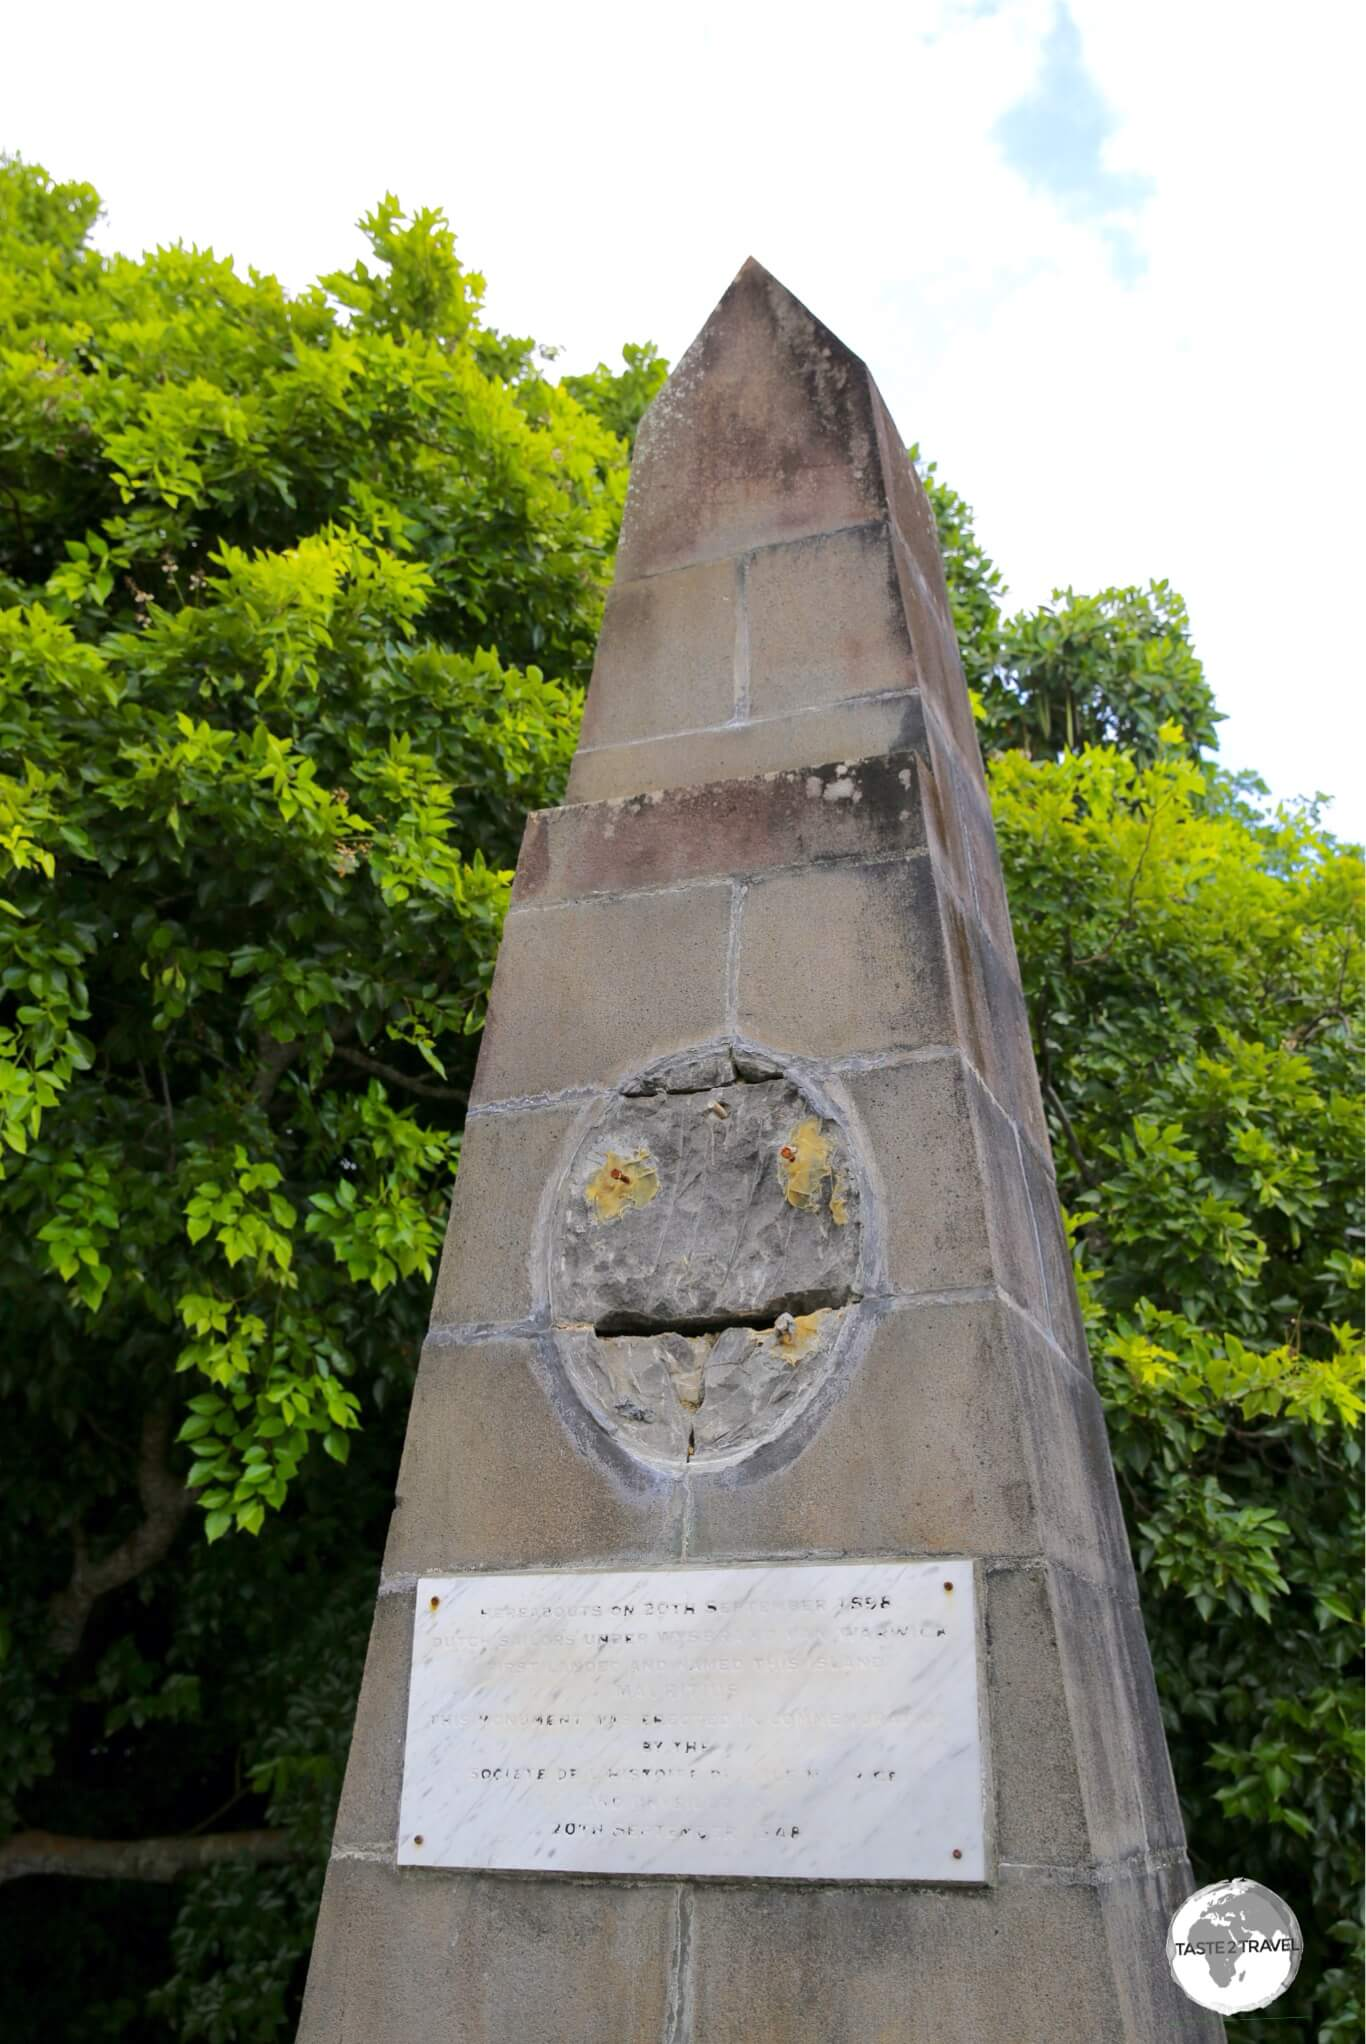 A rather dilapadated monument marks the spot where the Dutch first landed on Mauritius.